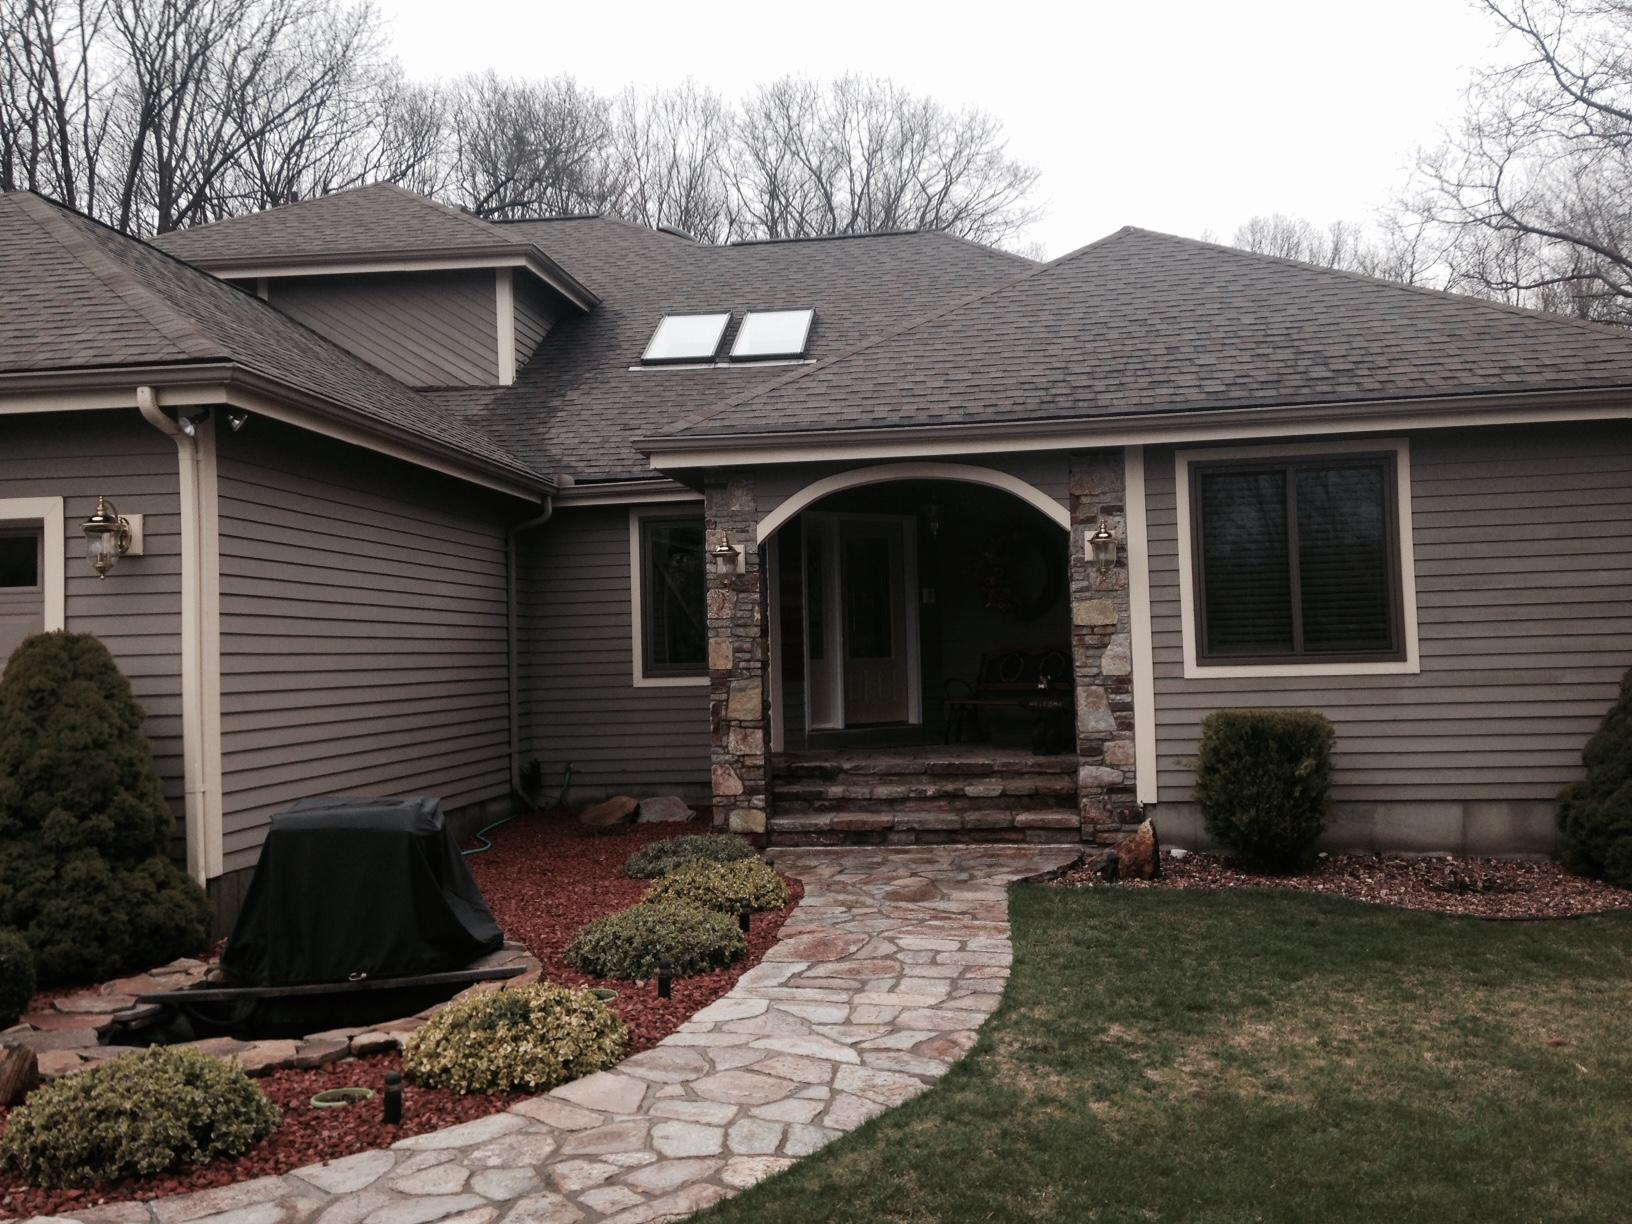 Home and Shed Roof Replacement in Prospect, CT - Before Photo